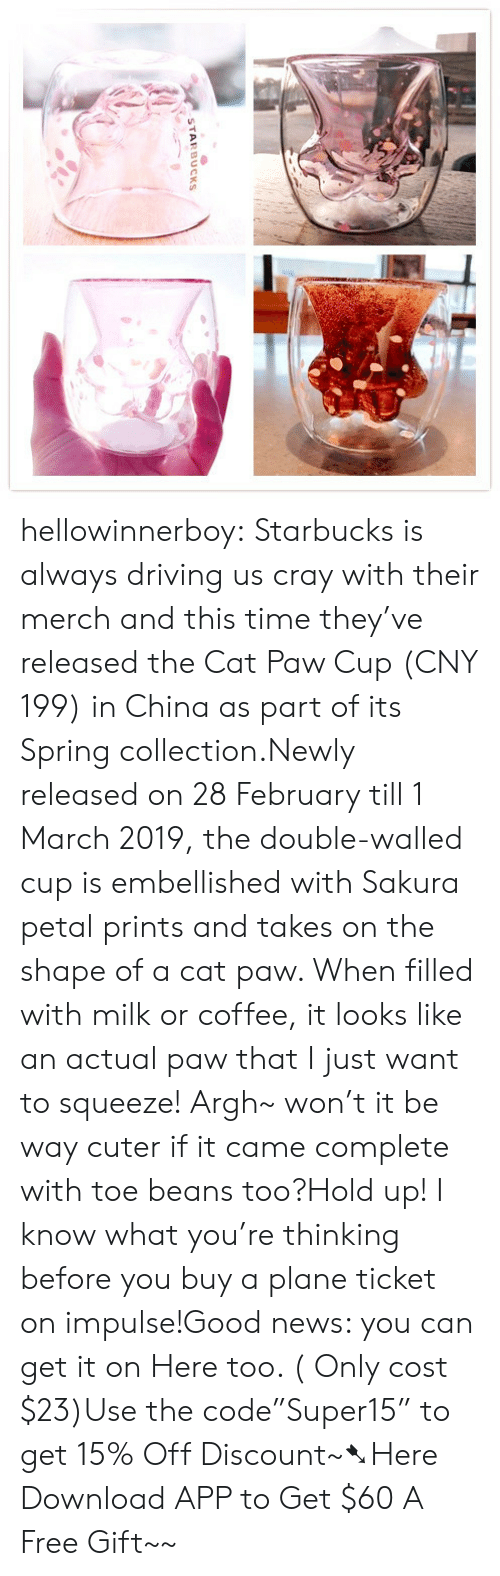 """merch: STARBUCKS hellowinnerboy:  Starbucks is always driving us cray with their merch and this time they've released the Cat Paw Cup (CNY 199) in China as part of its Spring collection.Newly released on 28 February till 1 March 2019, the double-walled cup is embellished with Sakura petal prints and takes on the shape of a cat paw. When filled with milk or coffee, it looks like an actual paw that I just want to squeeze! Argh~ won't it be way cuter if it came complete with toe beans too?Hold up! I know what you're thinking before you buy a plane ticket on impulse!Good news: you can get it on Here too. ( Only cost $23)Use the code""""Super15"""" to get 15% Off Discount~➷Here Download APP to Get $60  A Free Gift~~"""